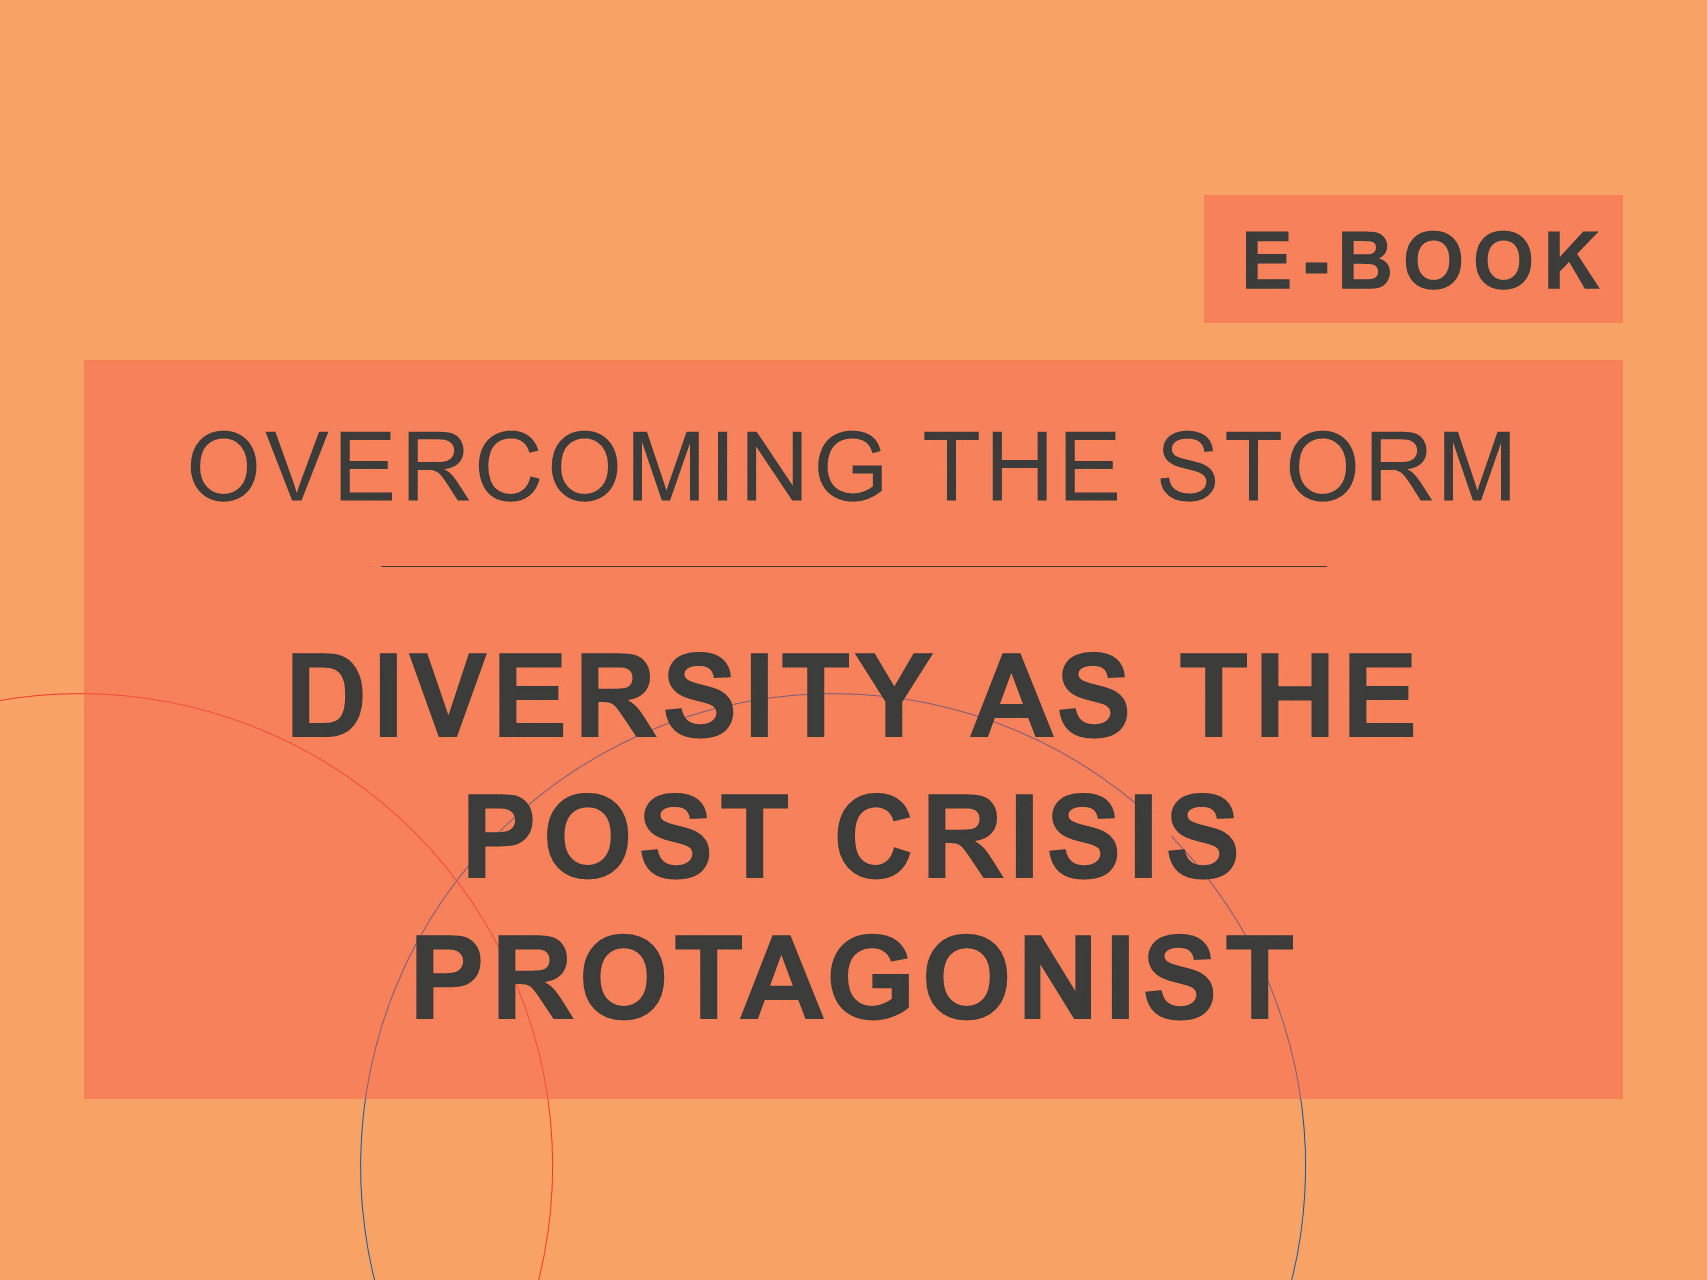 Diversity as The Post Crisis Protagonist' e-Book cover, from Cosin Consulting's e-Book series 'Overcoming the Storm'